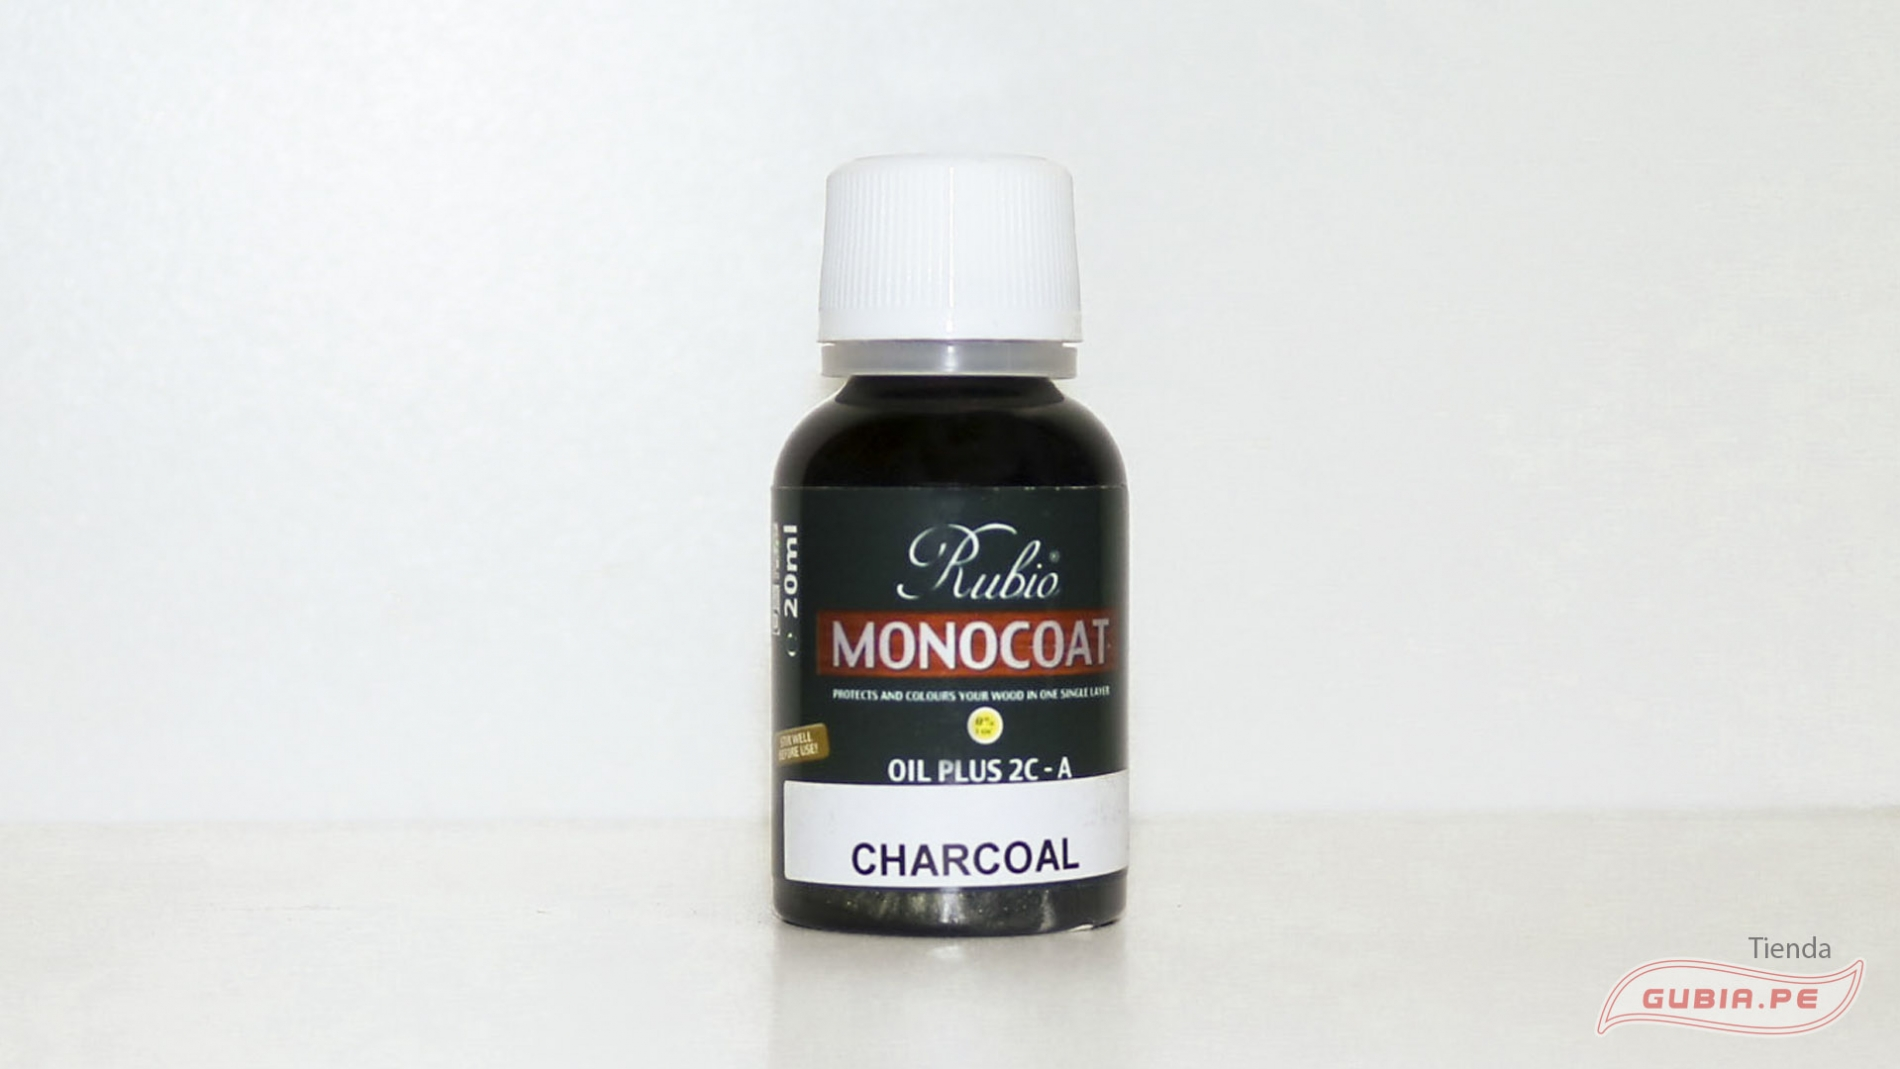 5410761168959-Charcoal Oil Plus 2C-A ( 20 ml ) RMC-max-1.